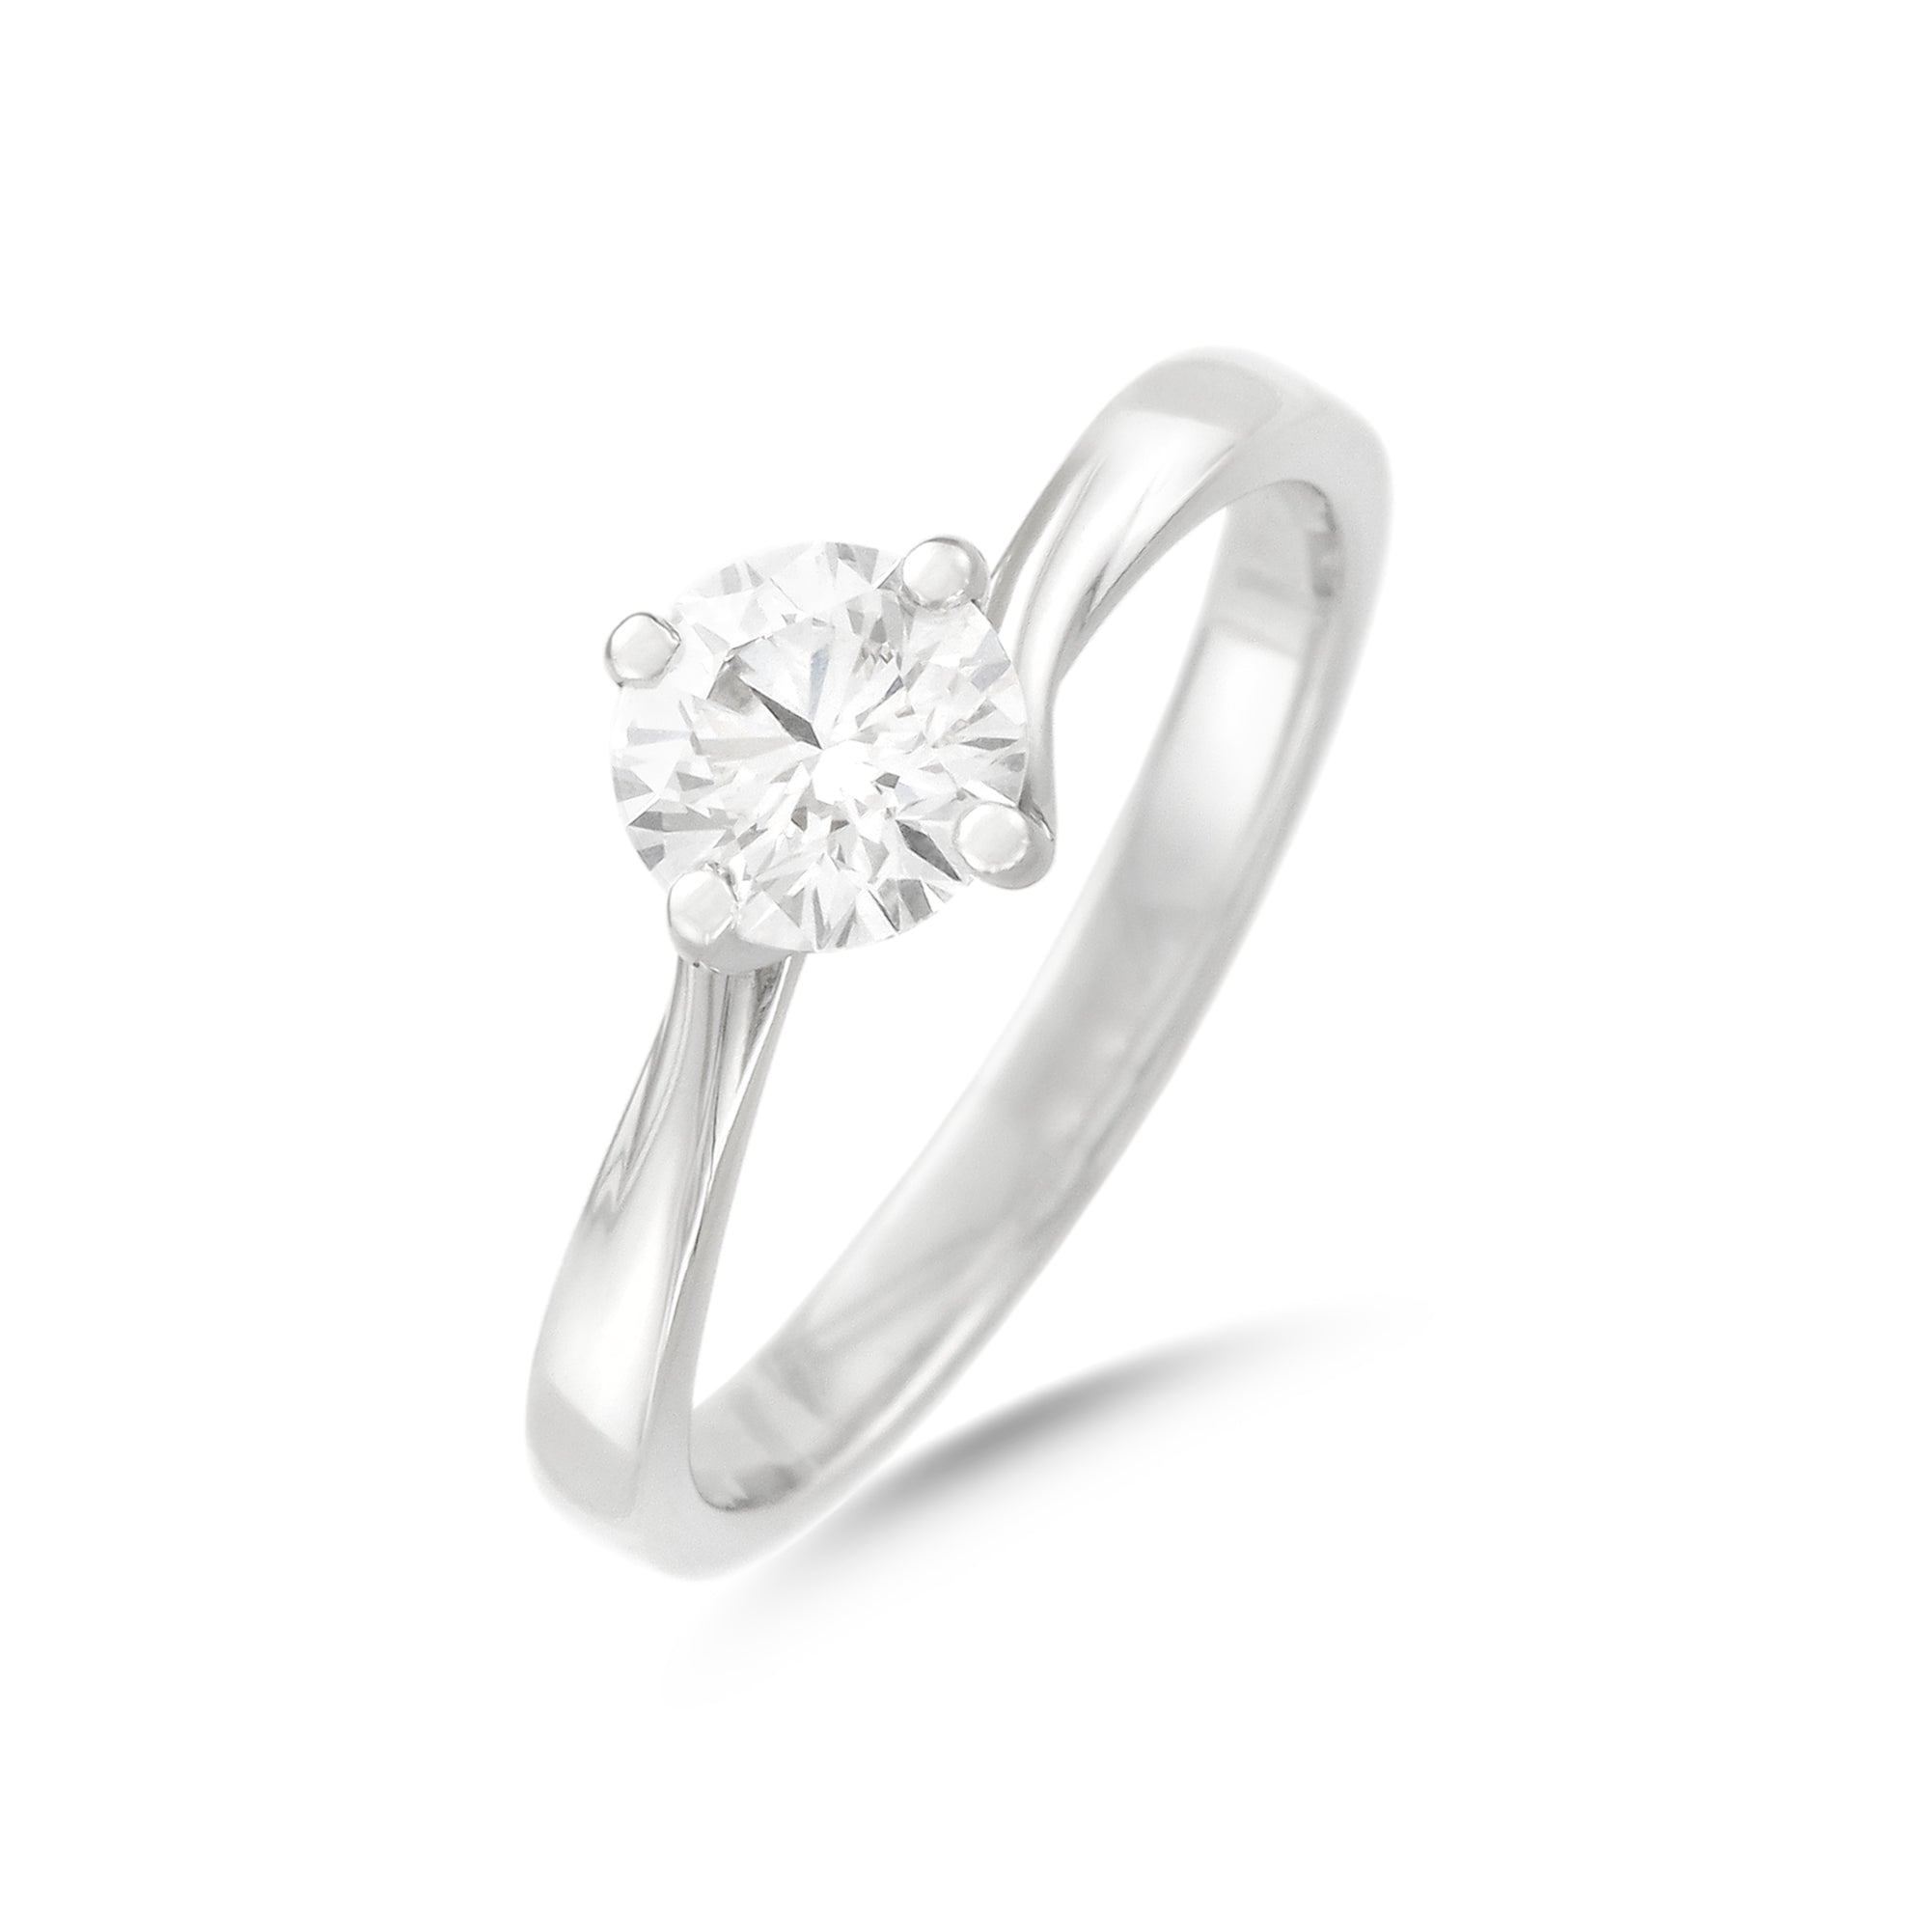 0.77ct Brilliant-Cut Diamond Solitaire Engagement Ring